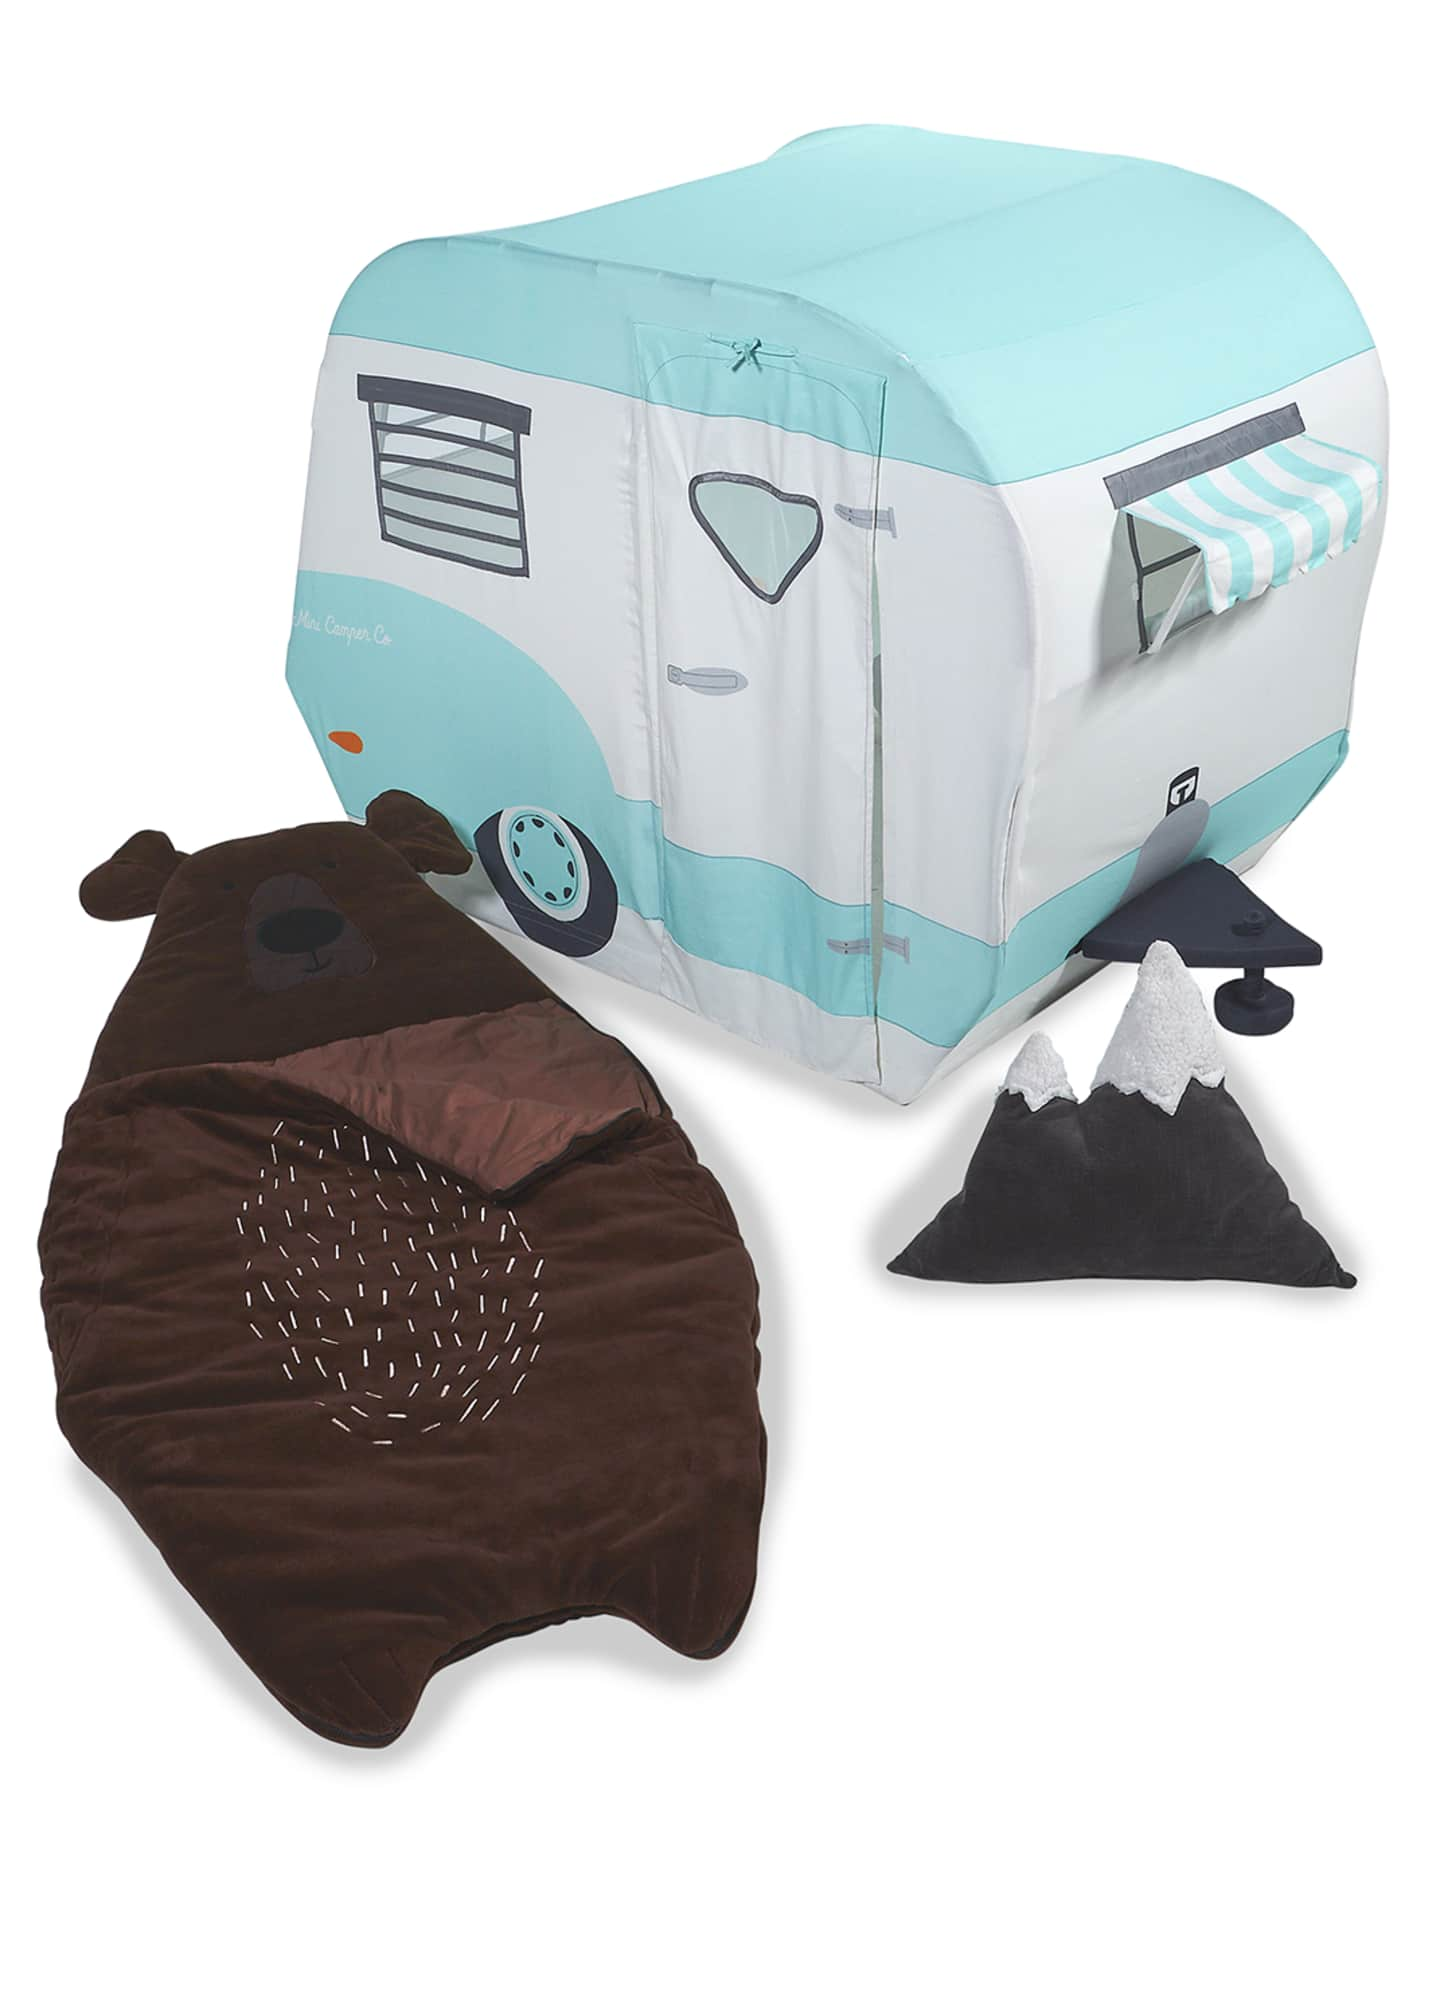 ASWEETS Glamping Playset Collection